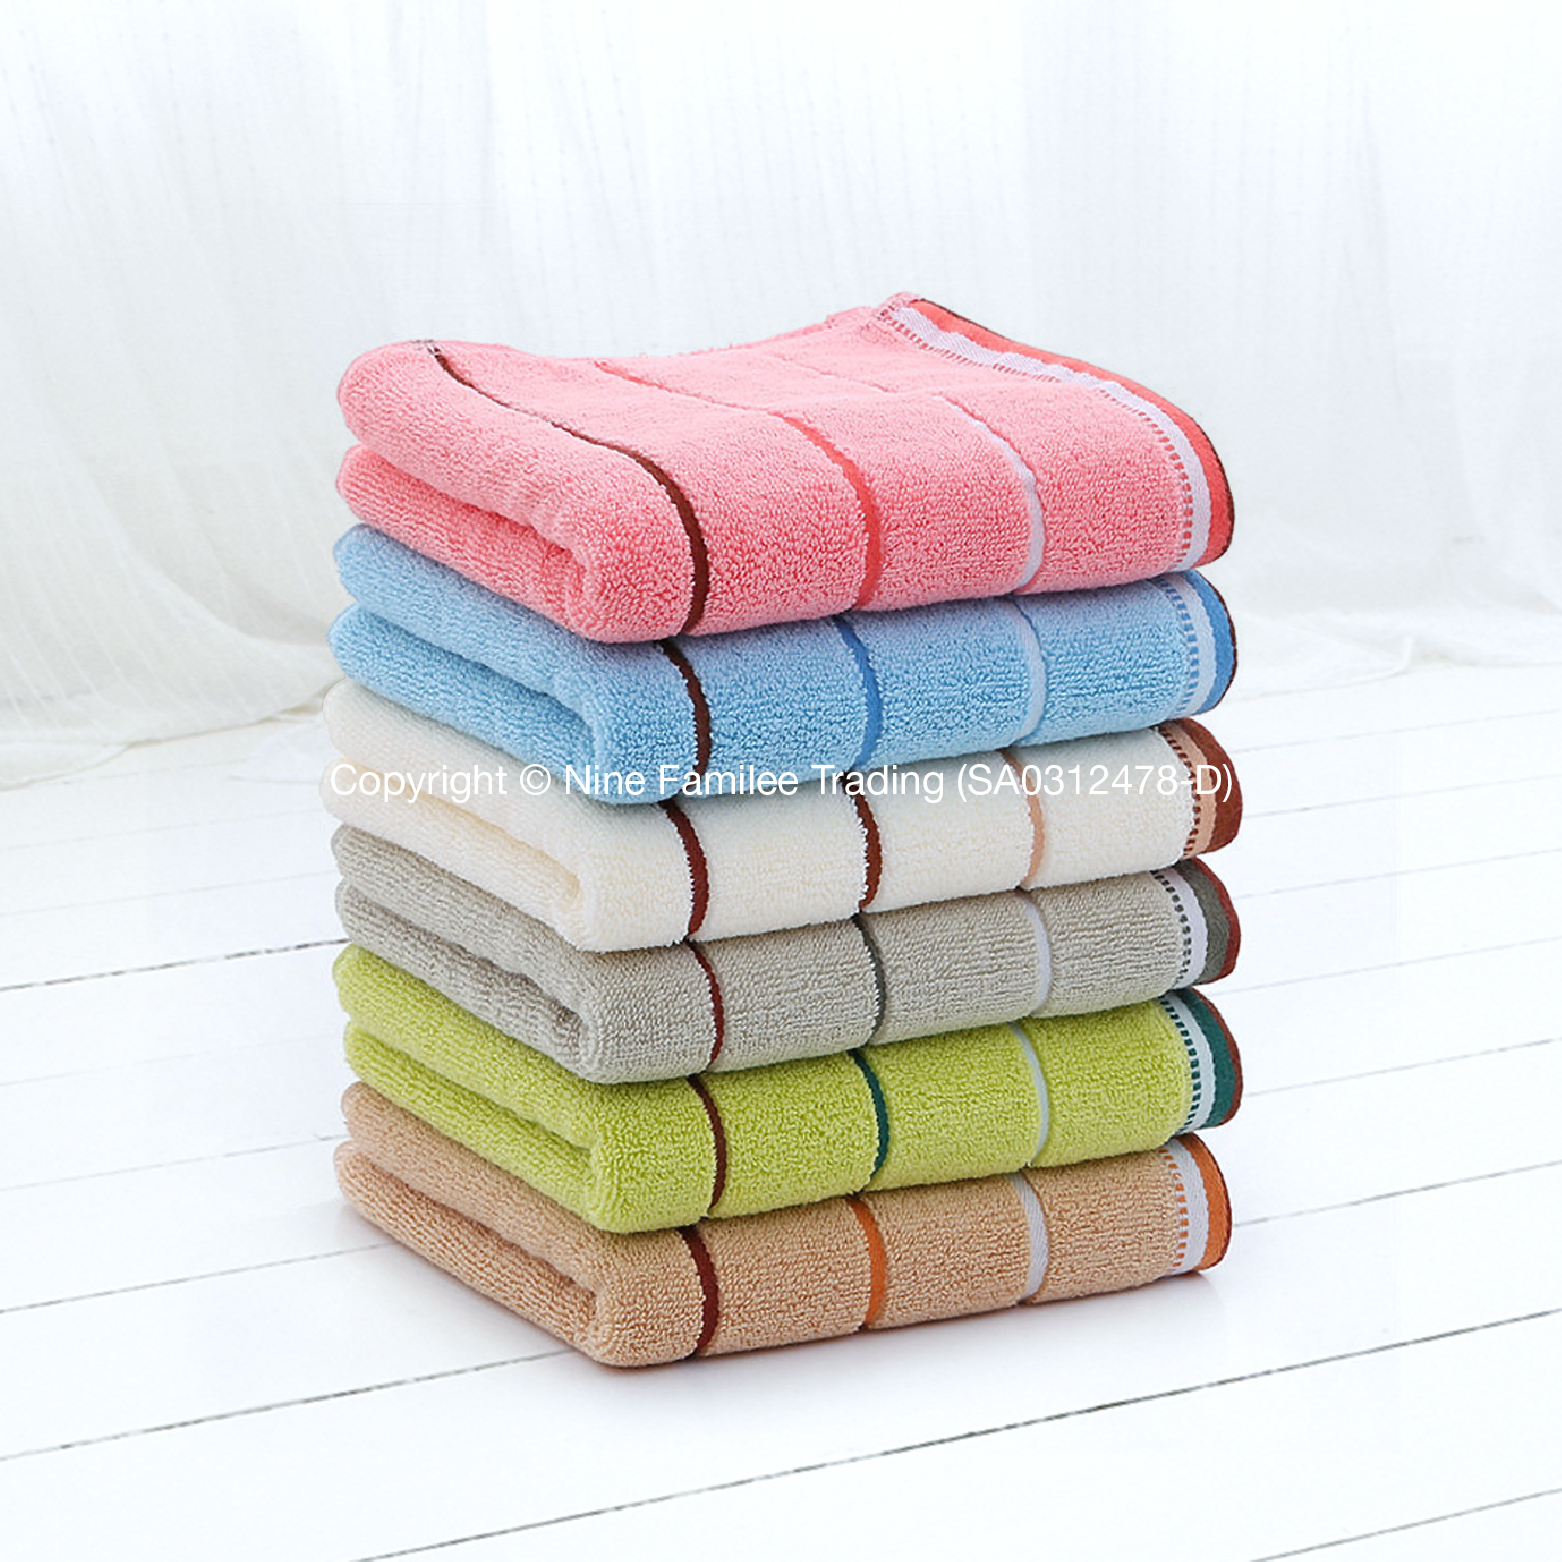 Products - 6 Colours Cotton Hand Towel-01.jpg